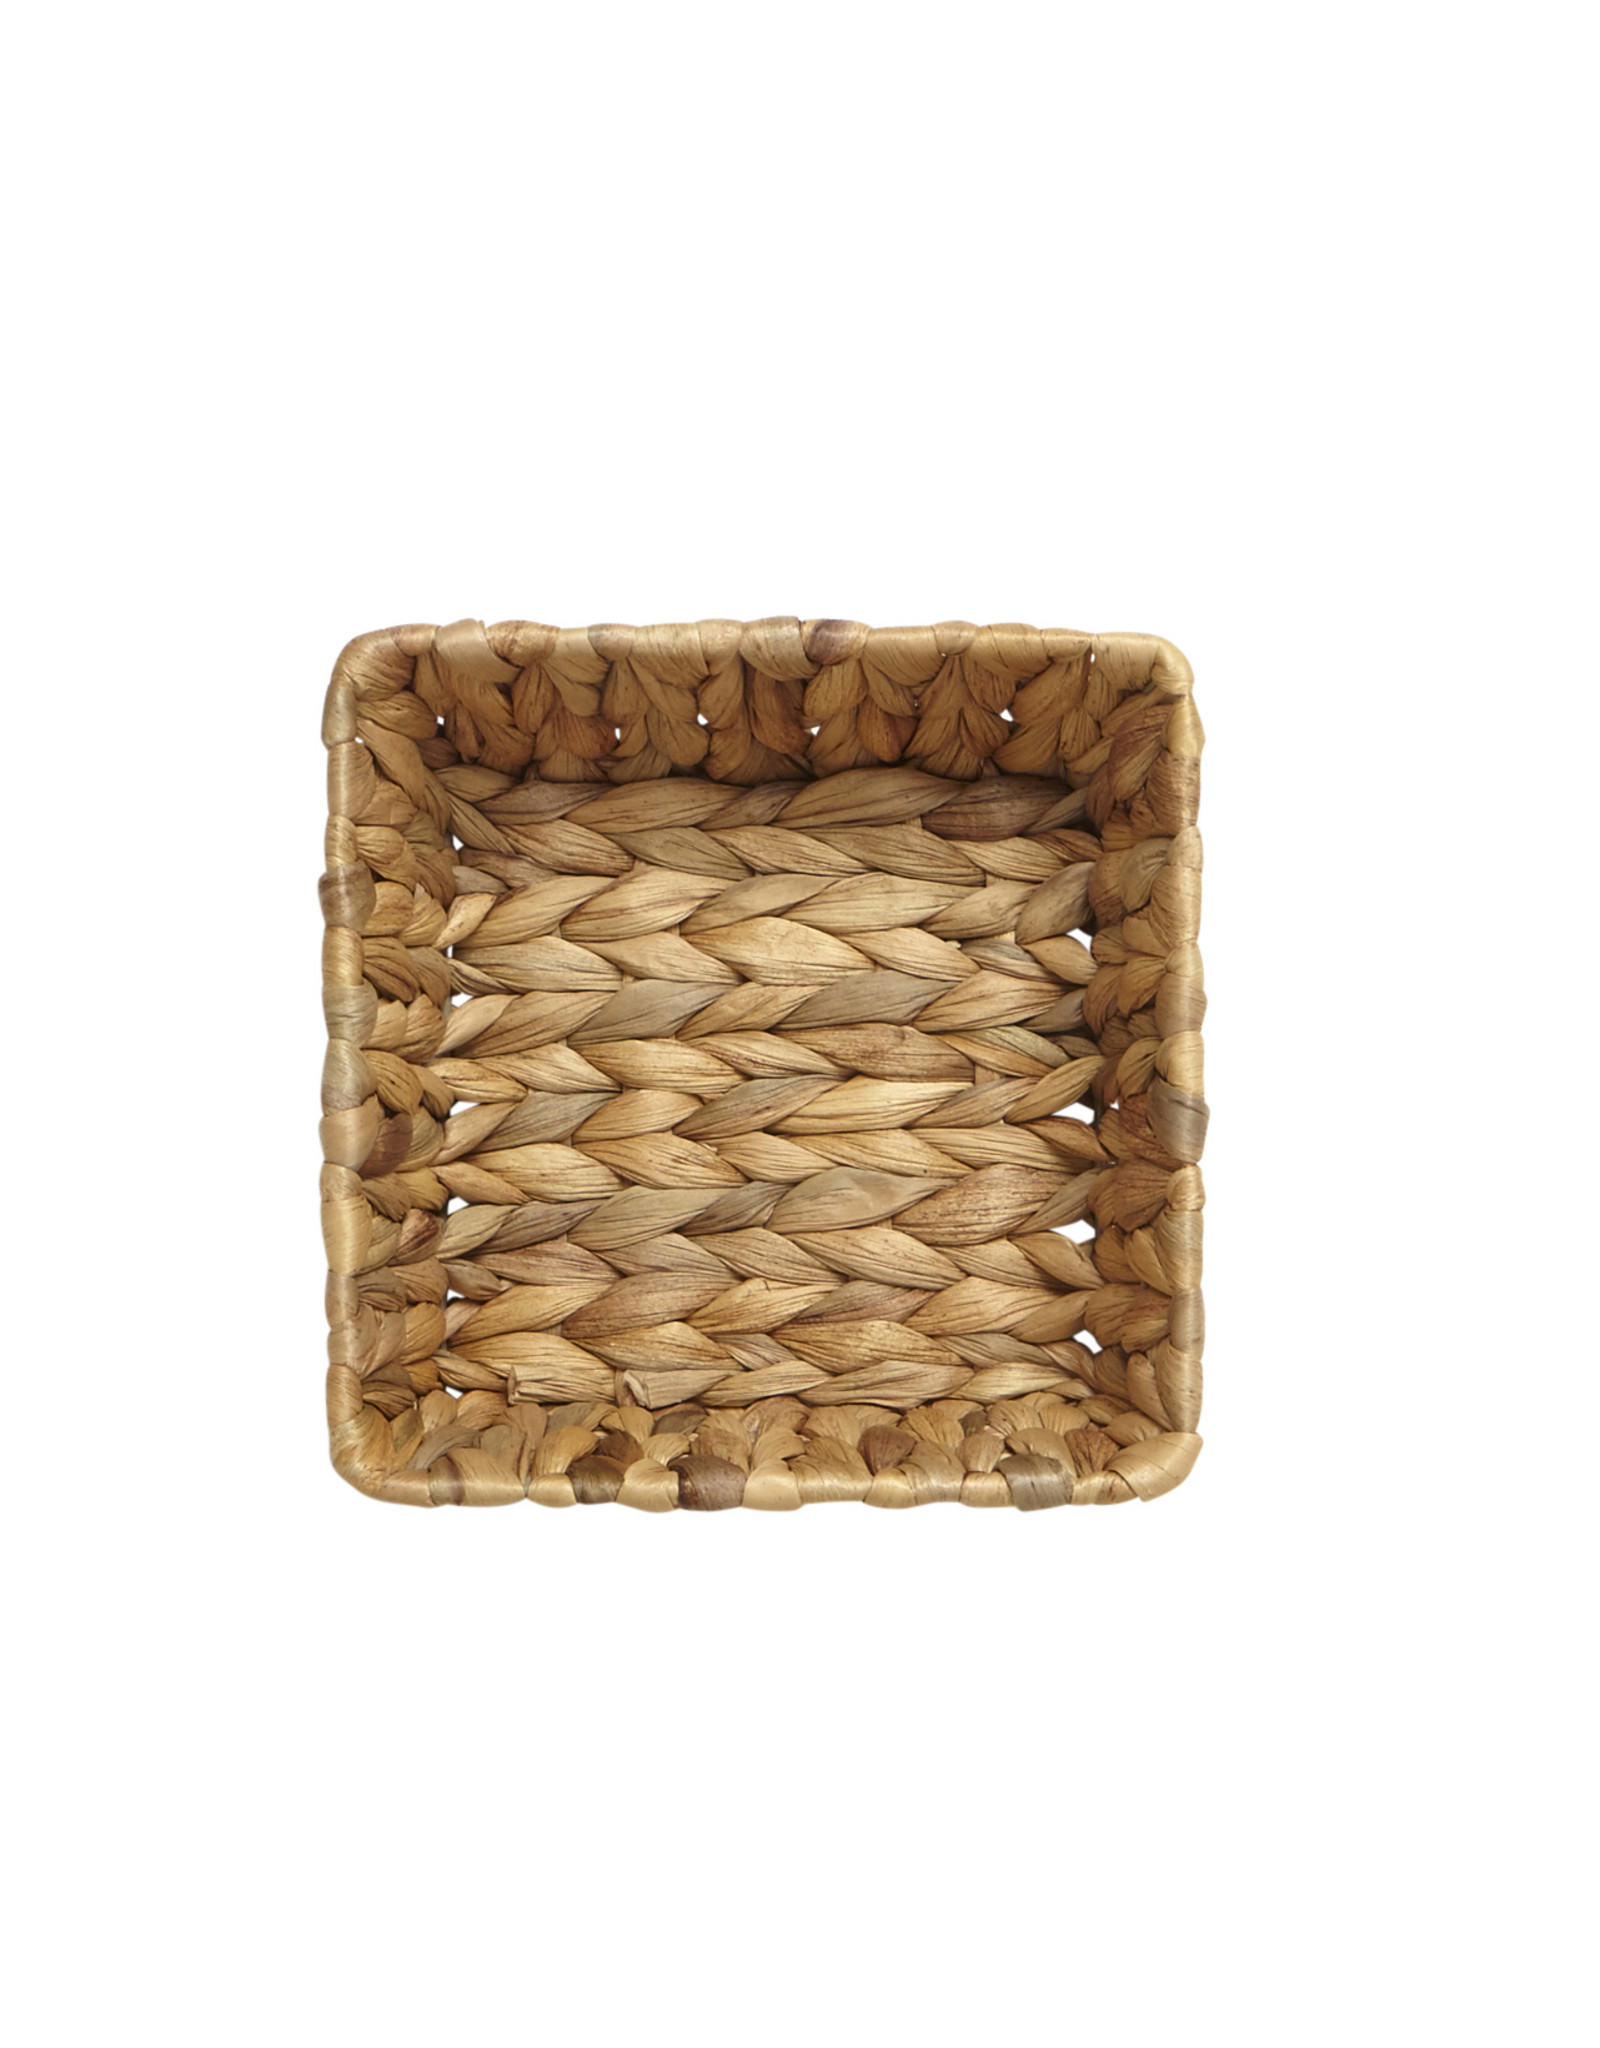 Woven Napkin Tray (Cocktail)